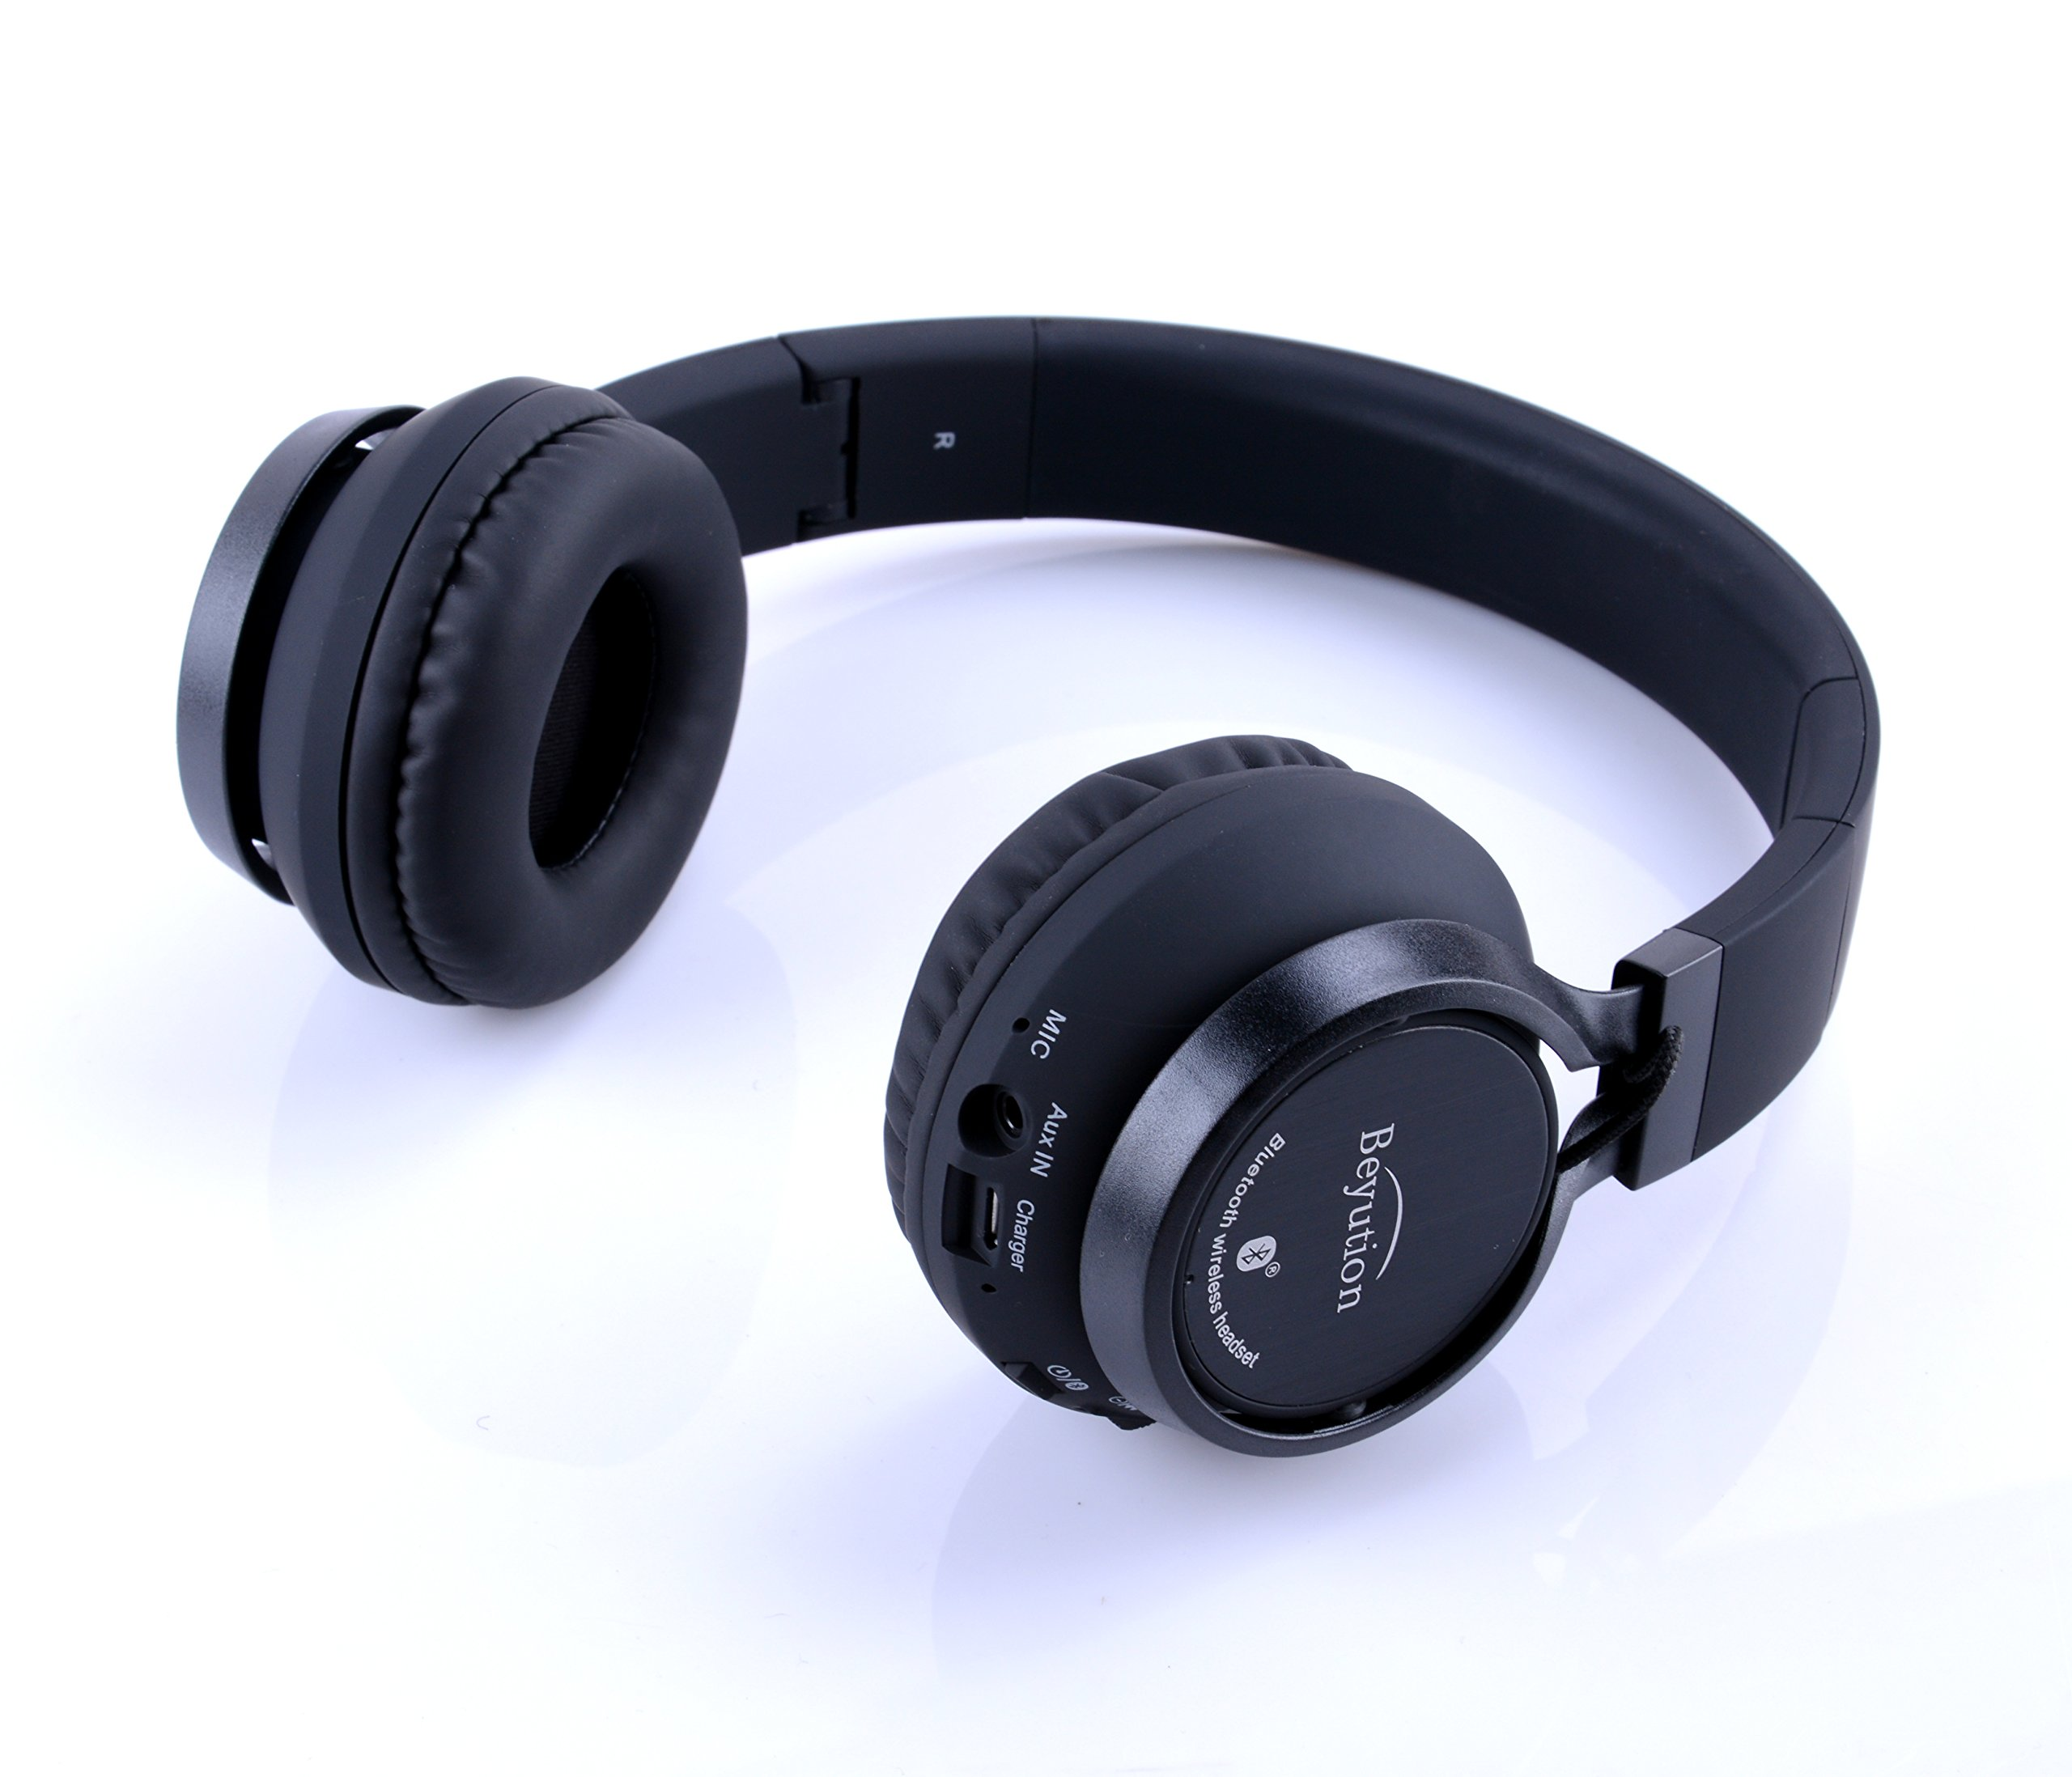 Beyution Black Metal Wireless Bluetooth Headsets Over Ear Bluetooth Headphones with Mic for iPhone 8 X Samsung Smart Phones and All Tablet Laptop with Bluetooth Funcstion (BT525-Black-Metal) by Beyution (Image #5)